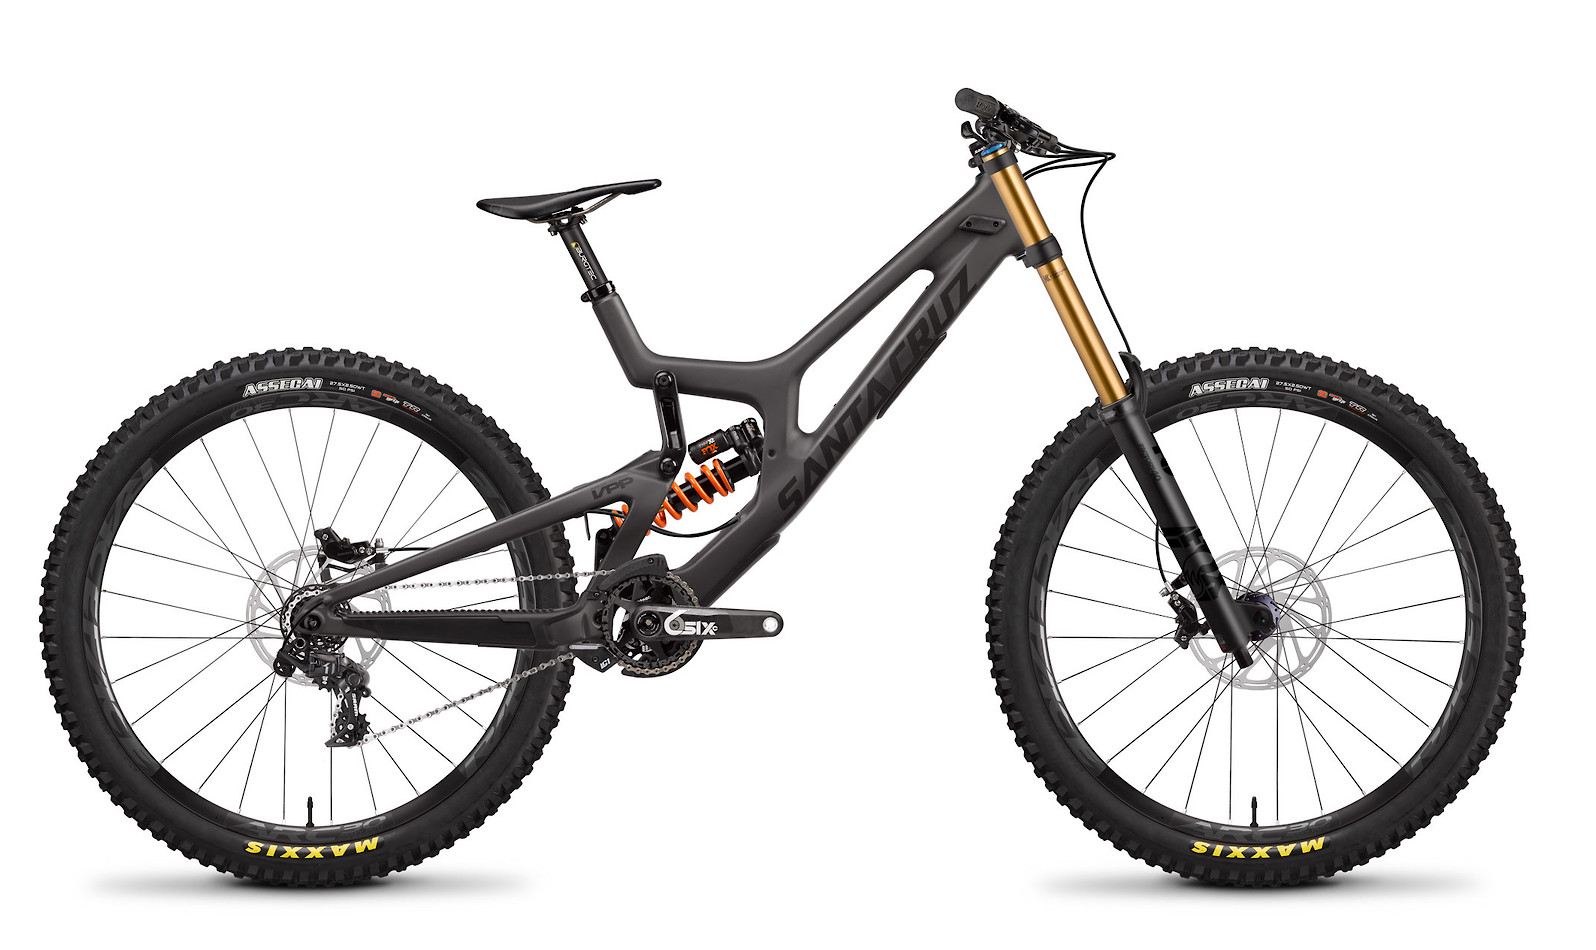 2019 Santa Cruz V10 Carbon CC X01 27.5 Bike